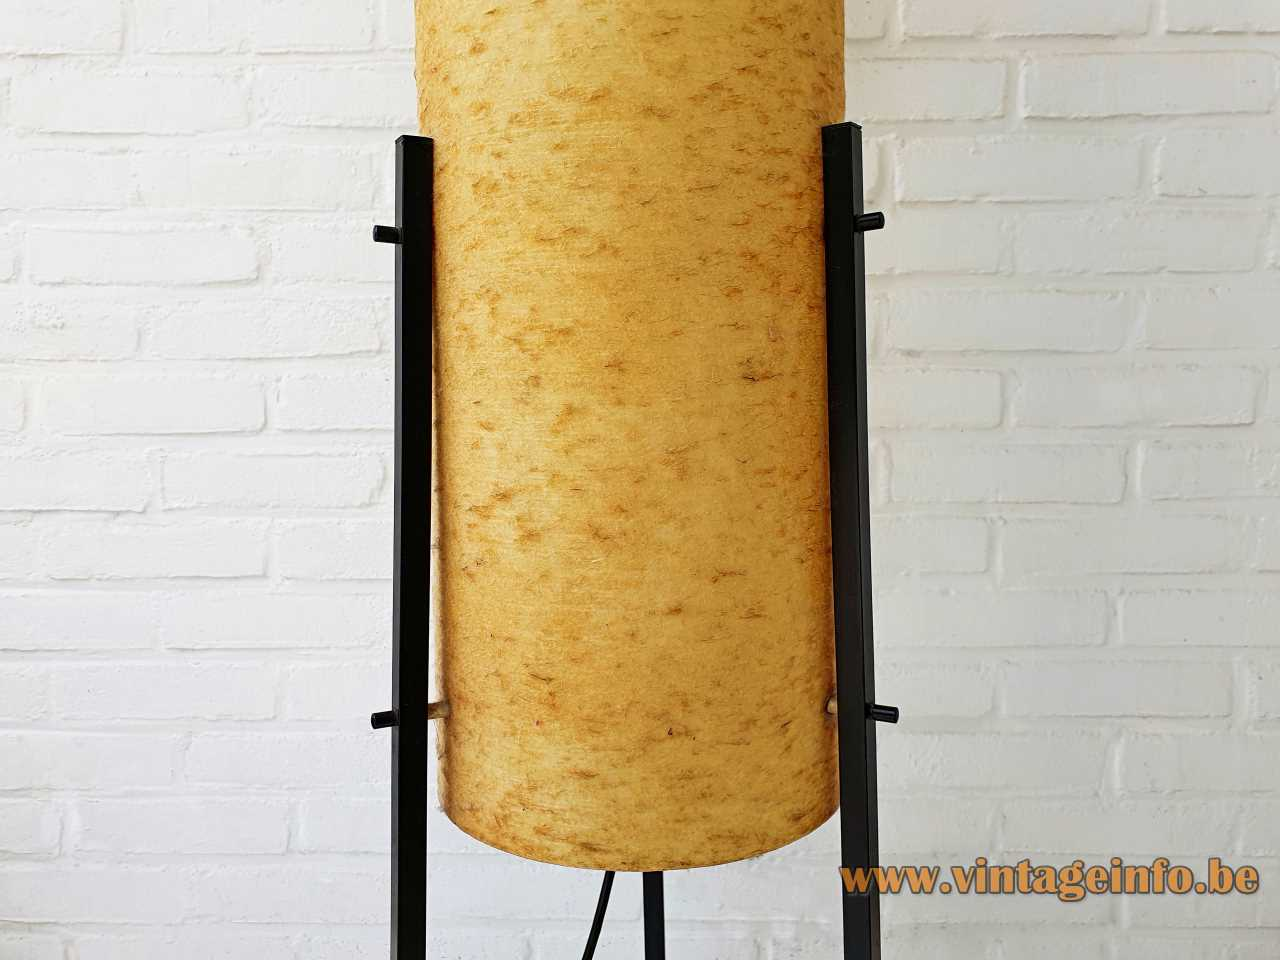 Dame & Co rocket floor lamp tripod base yellow tubular fibreglass lampshade 1960s Germany 3 E27 sockets